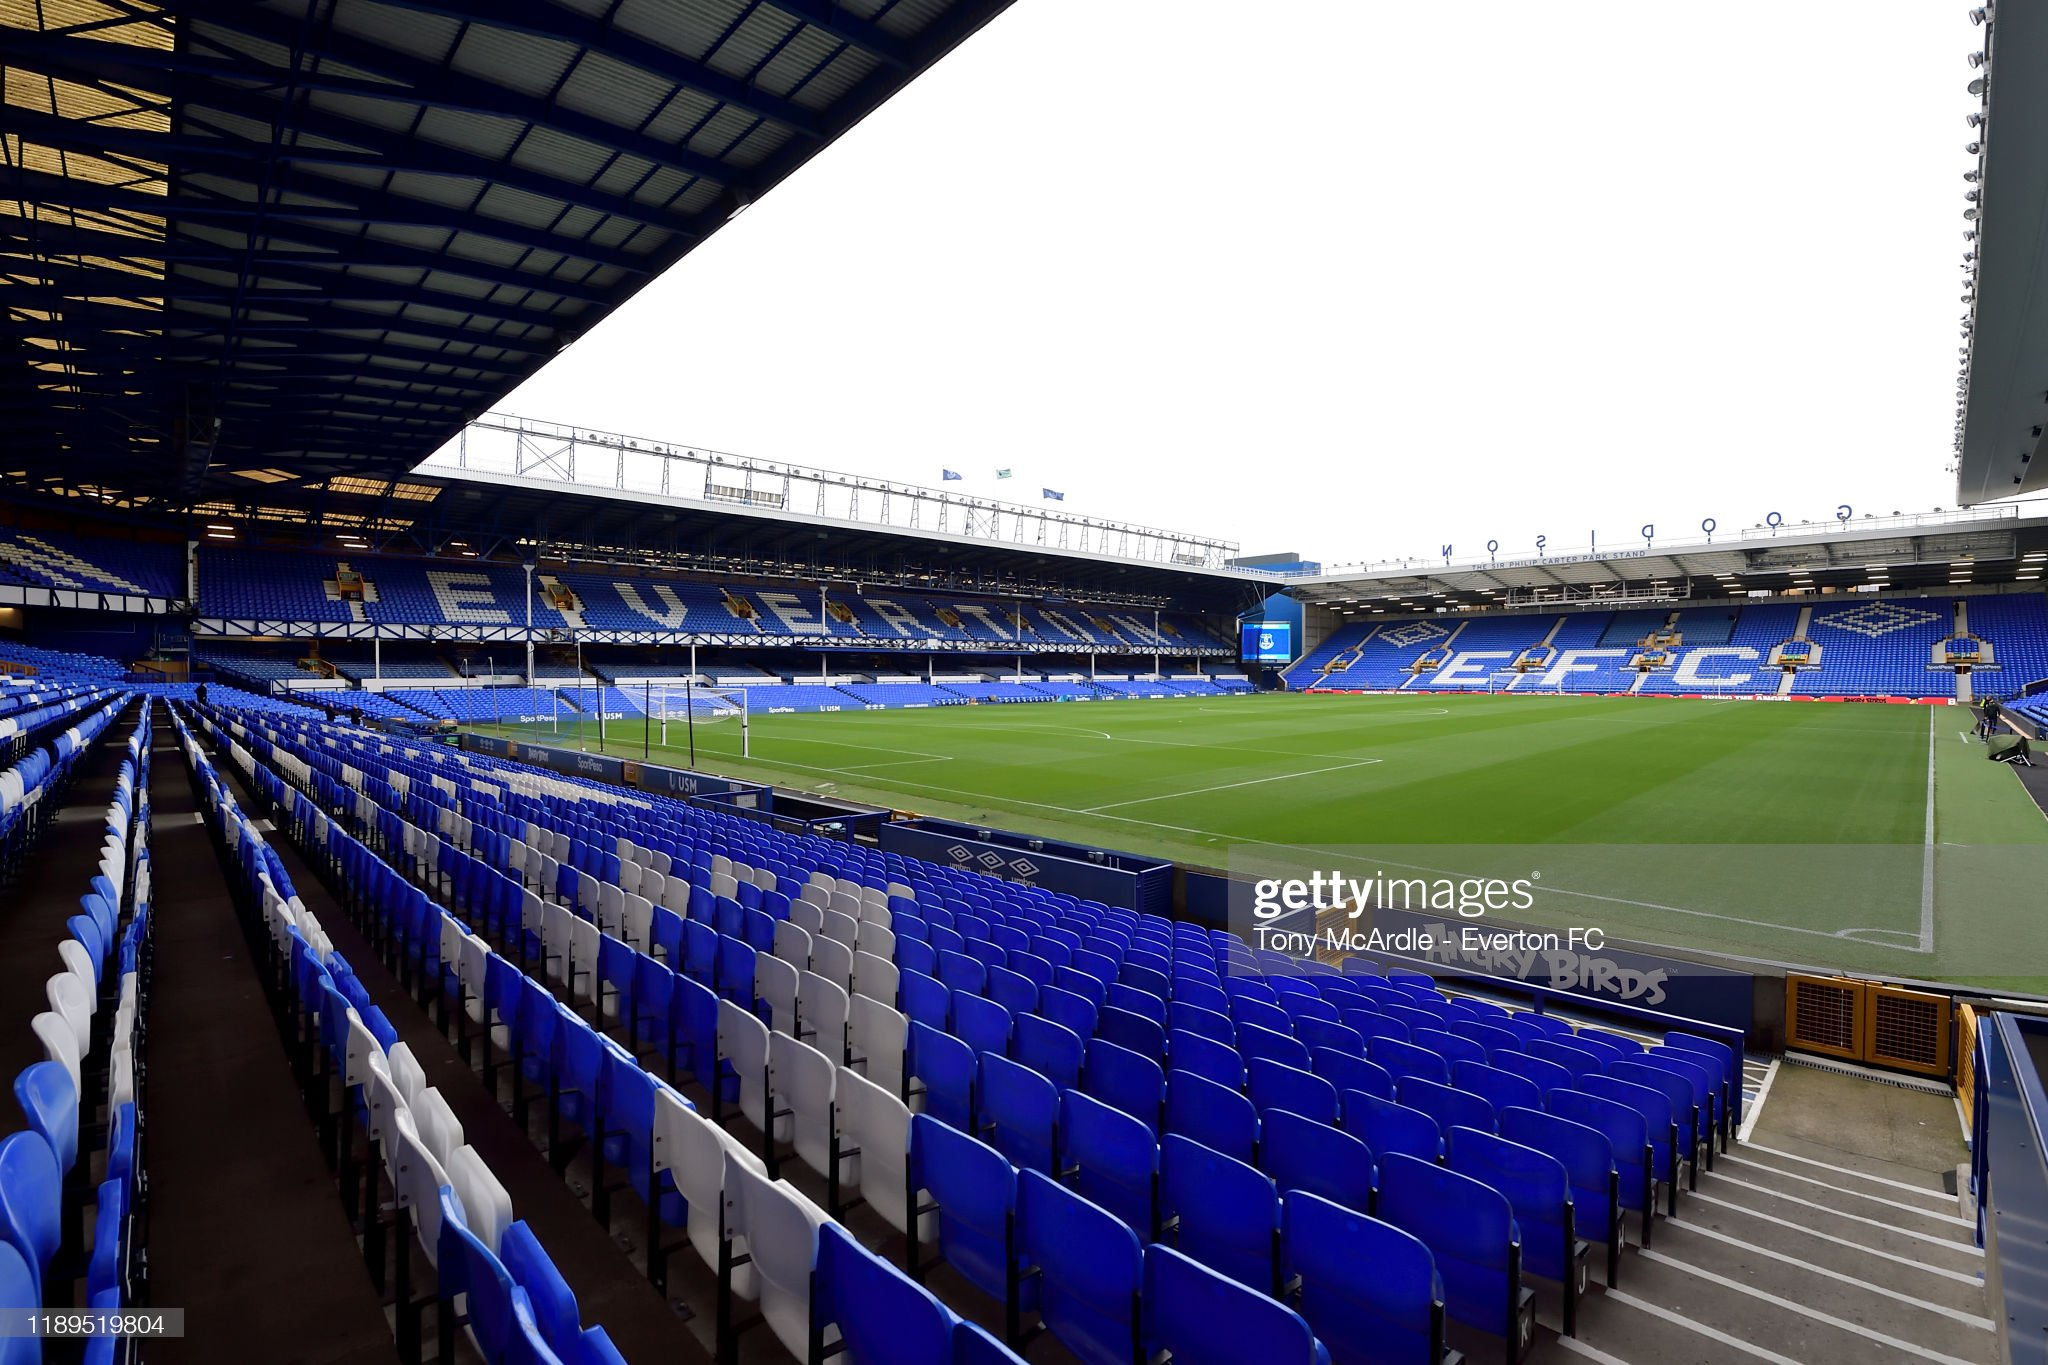 Everton v Leicester preview, prediction and odds